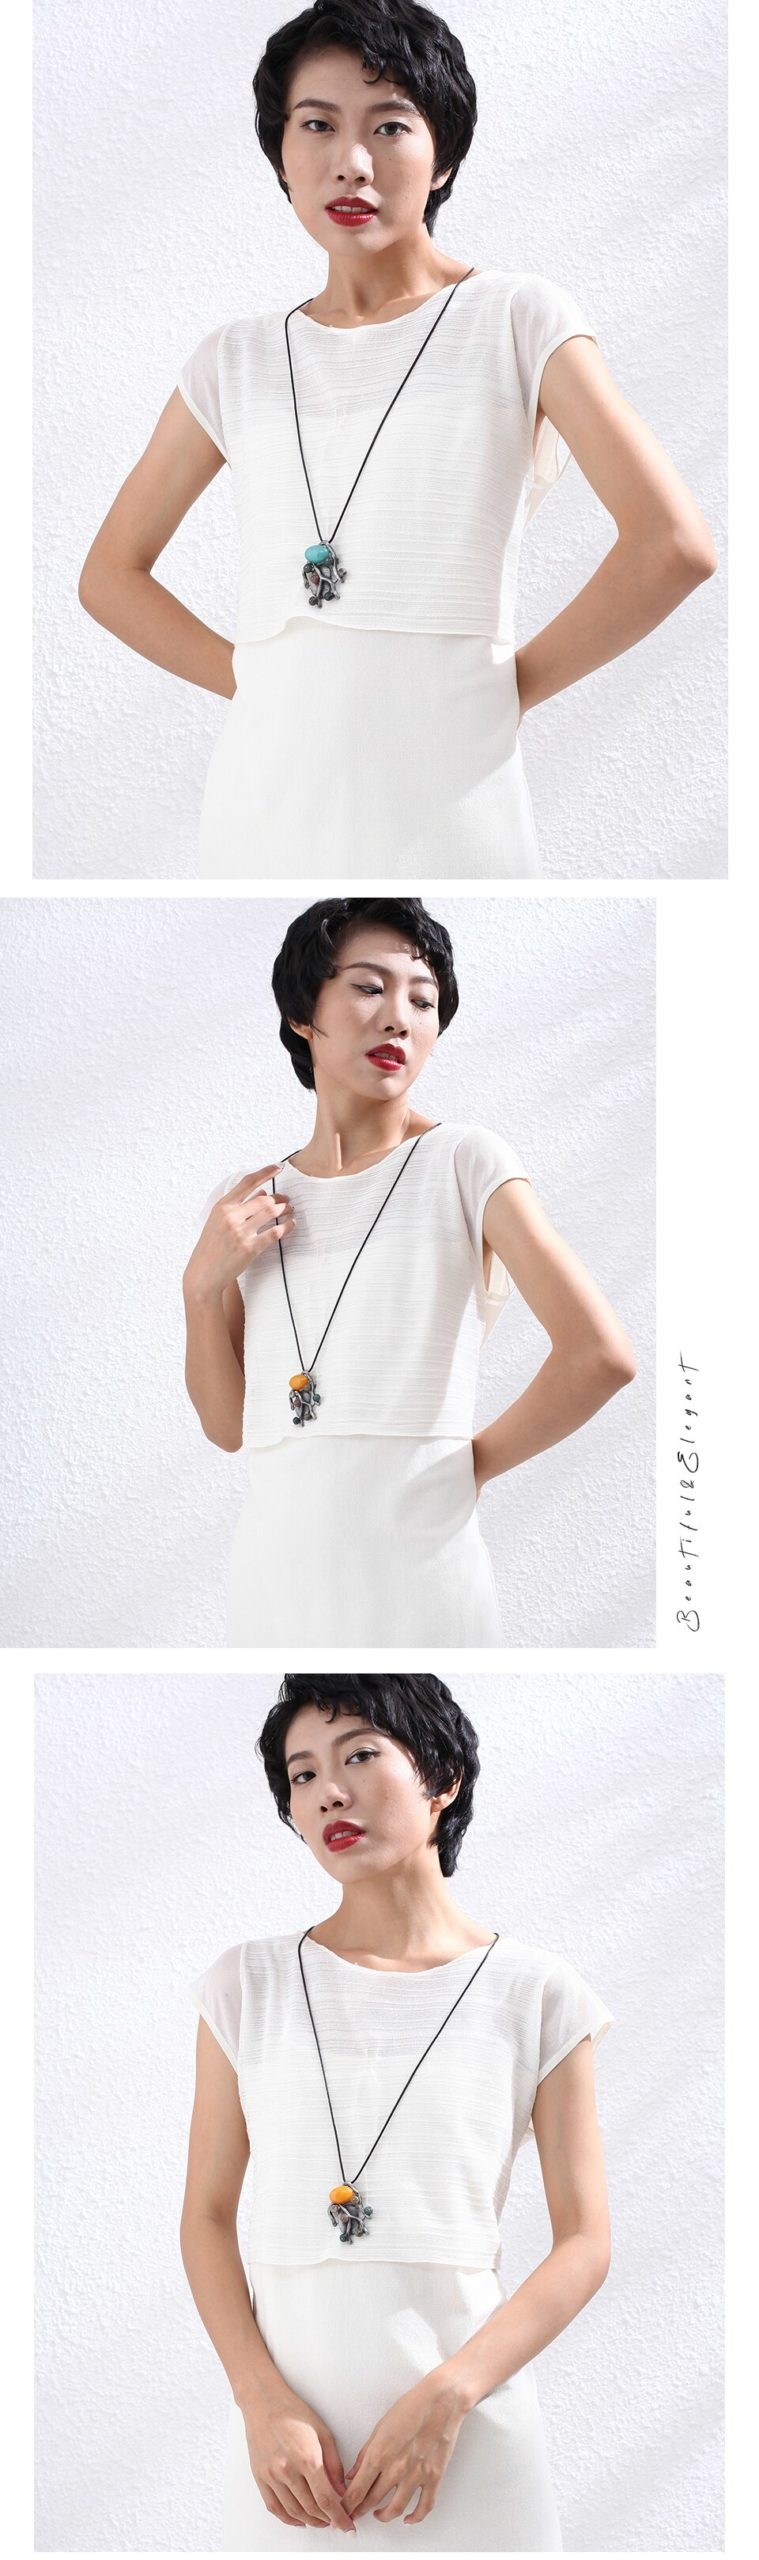 Branches Long Necklace for Women Vintage Plant  Jewelry Pendant Color Stone Beads Suspension Rope Chains Choker Jewellery 2020